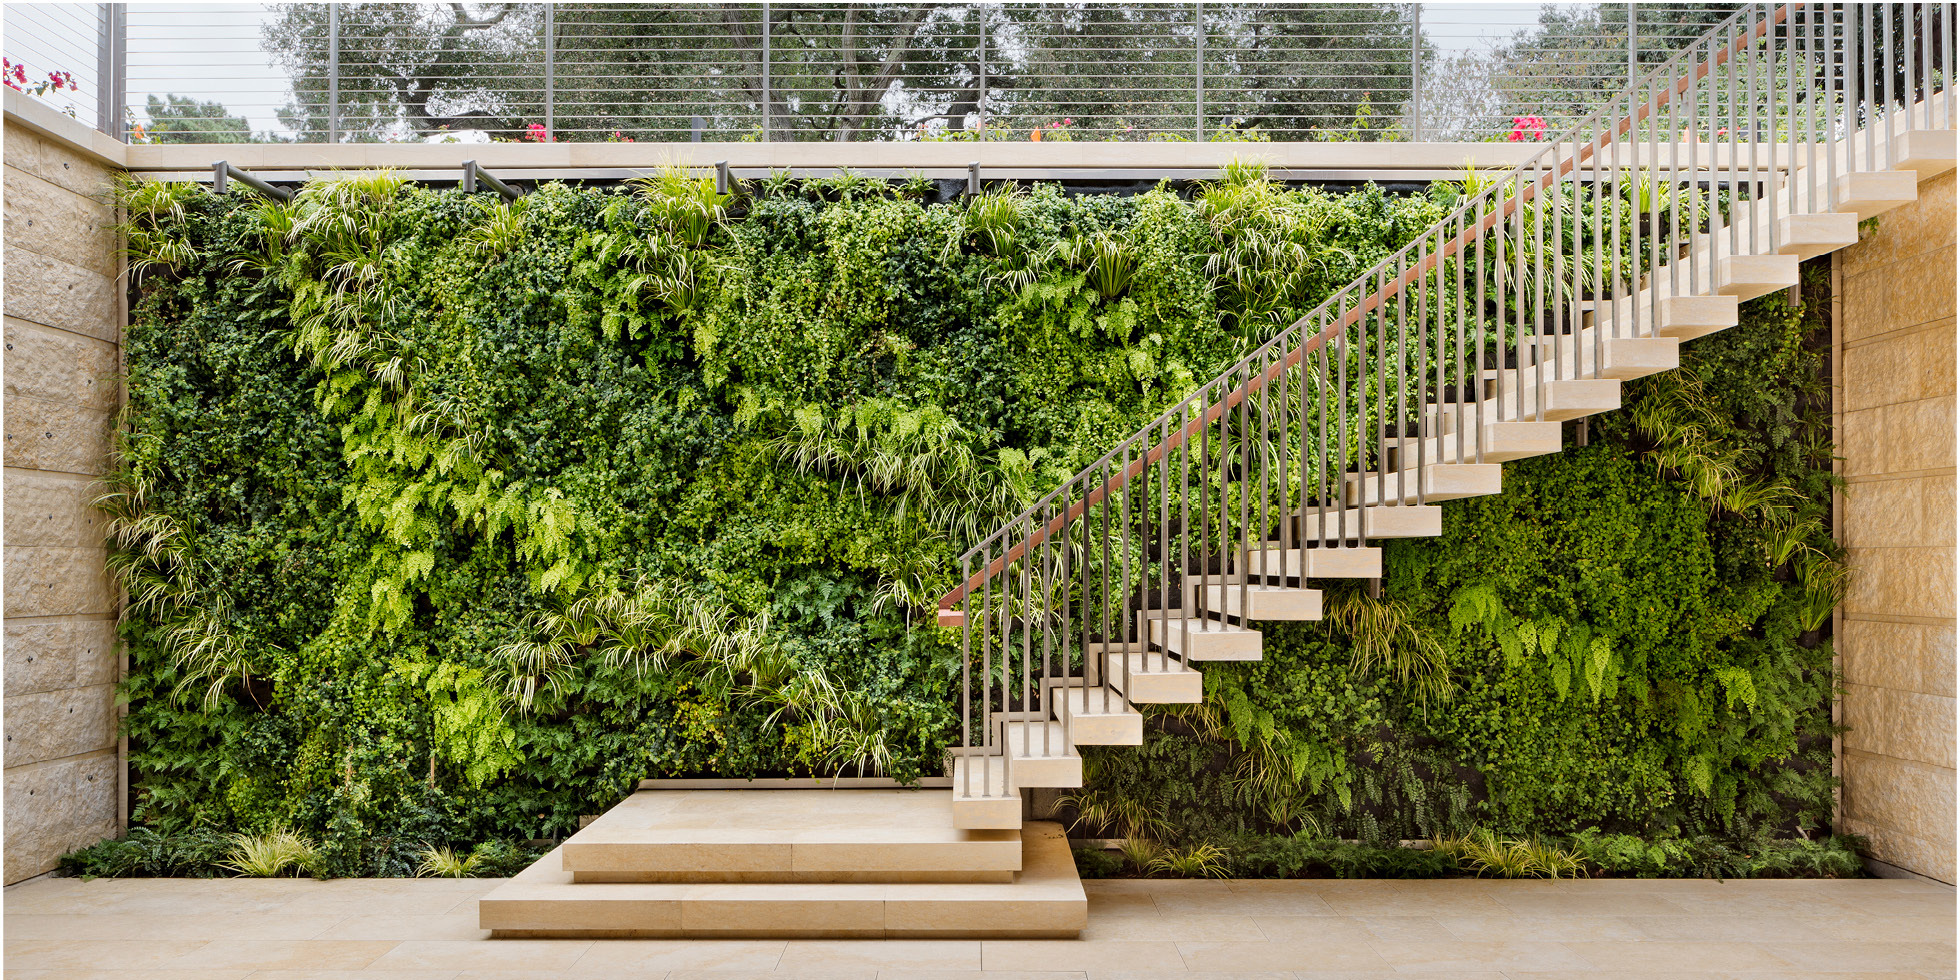 Atherton Residence Living Wall by Habitat Horticulture - View 1